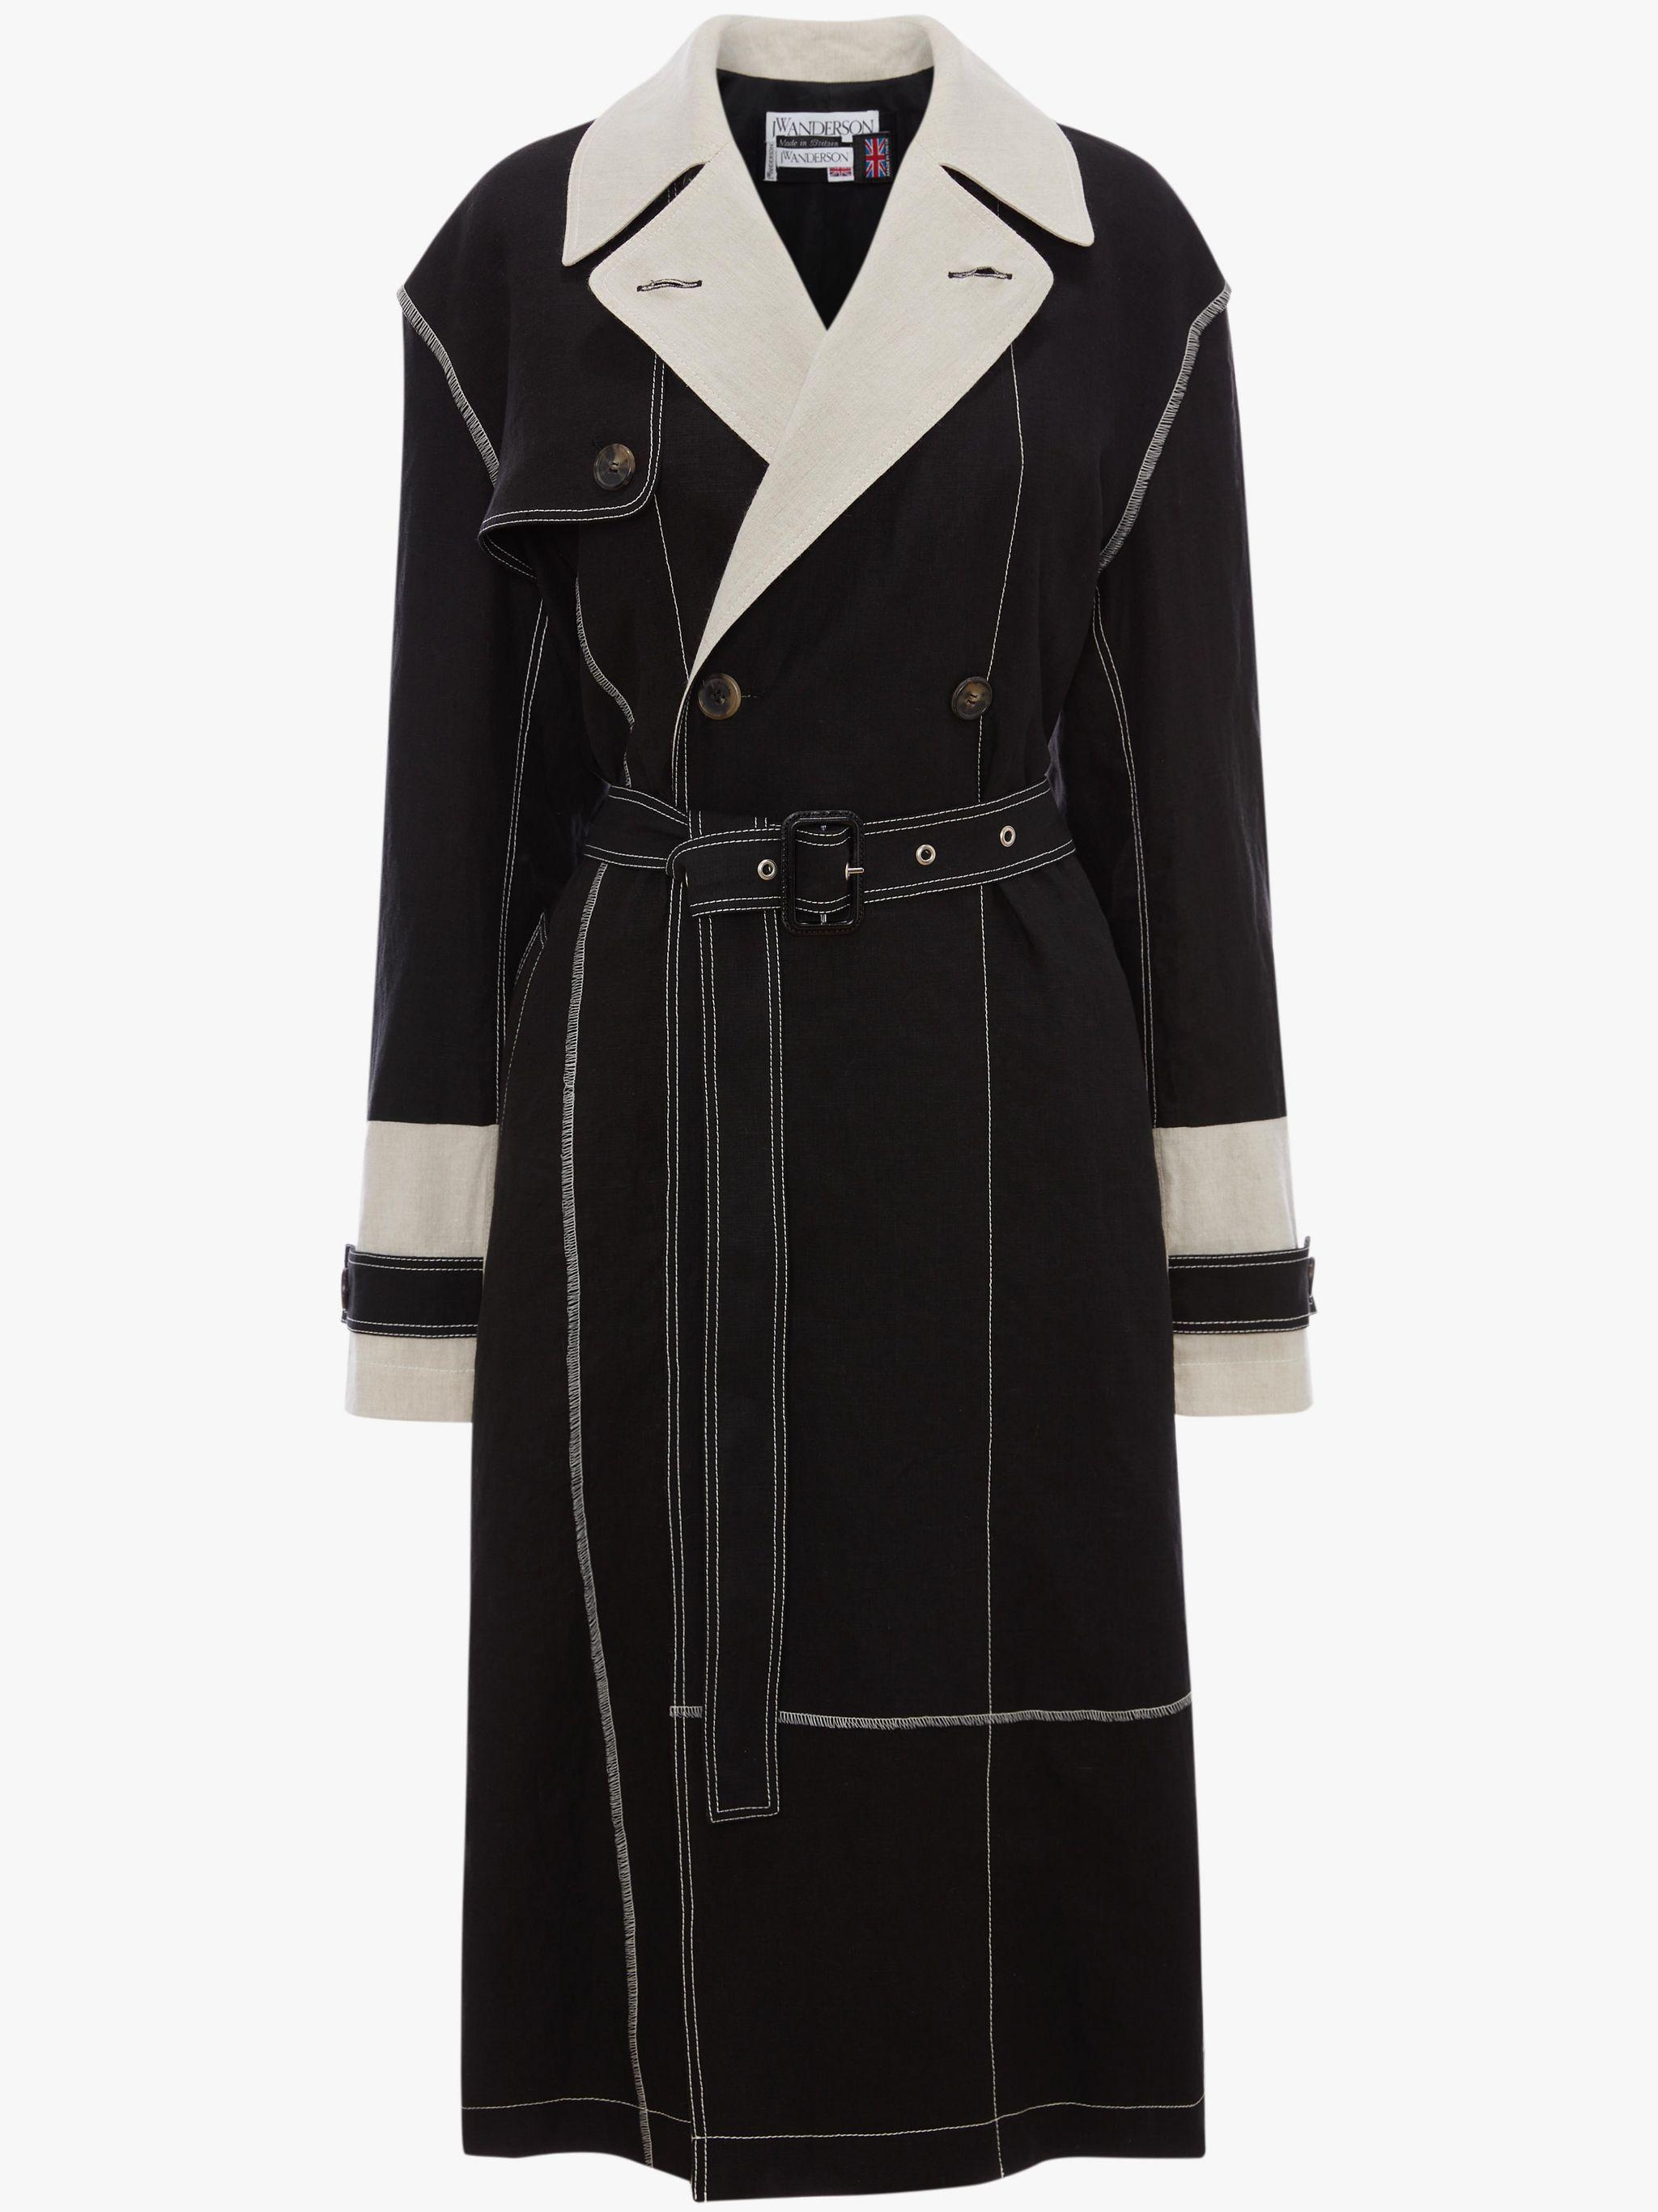 MADE IN BRITAIN: TRENCH COAT 4